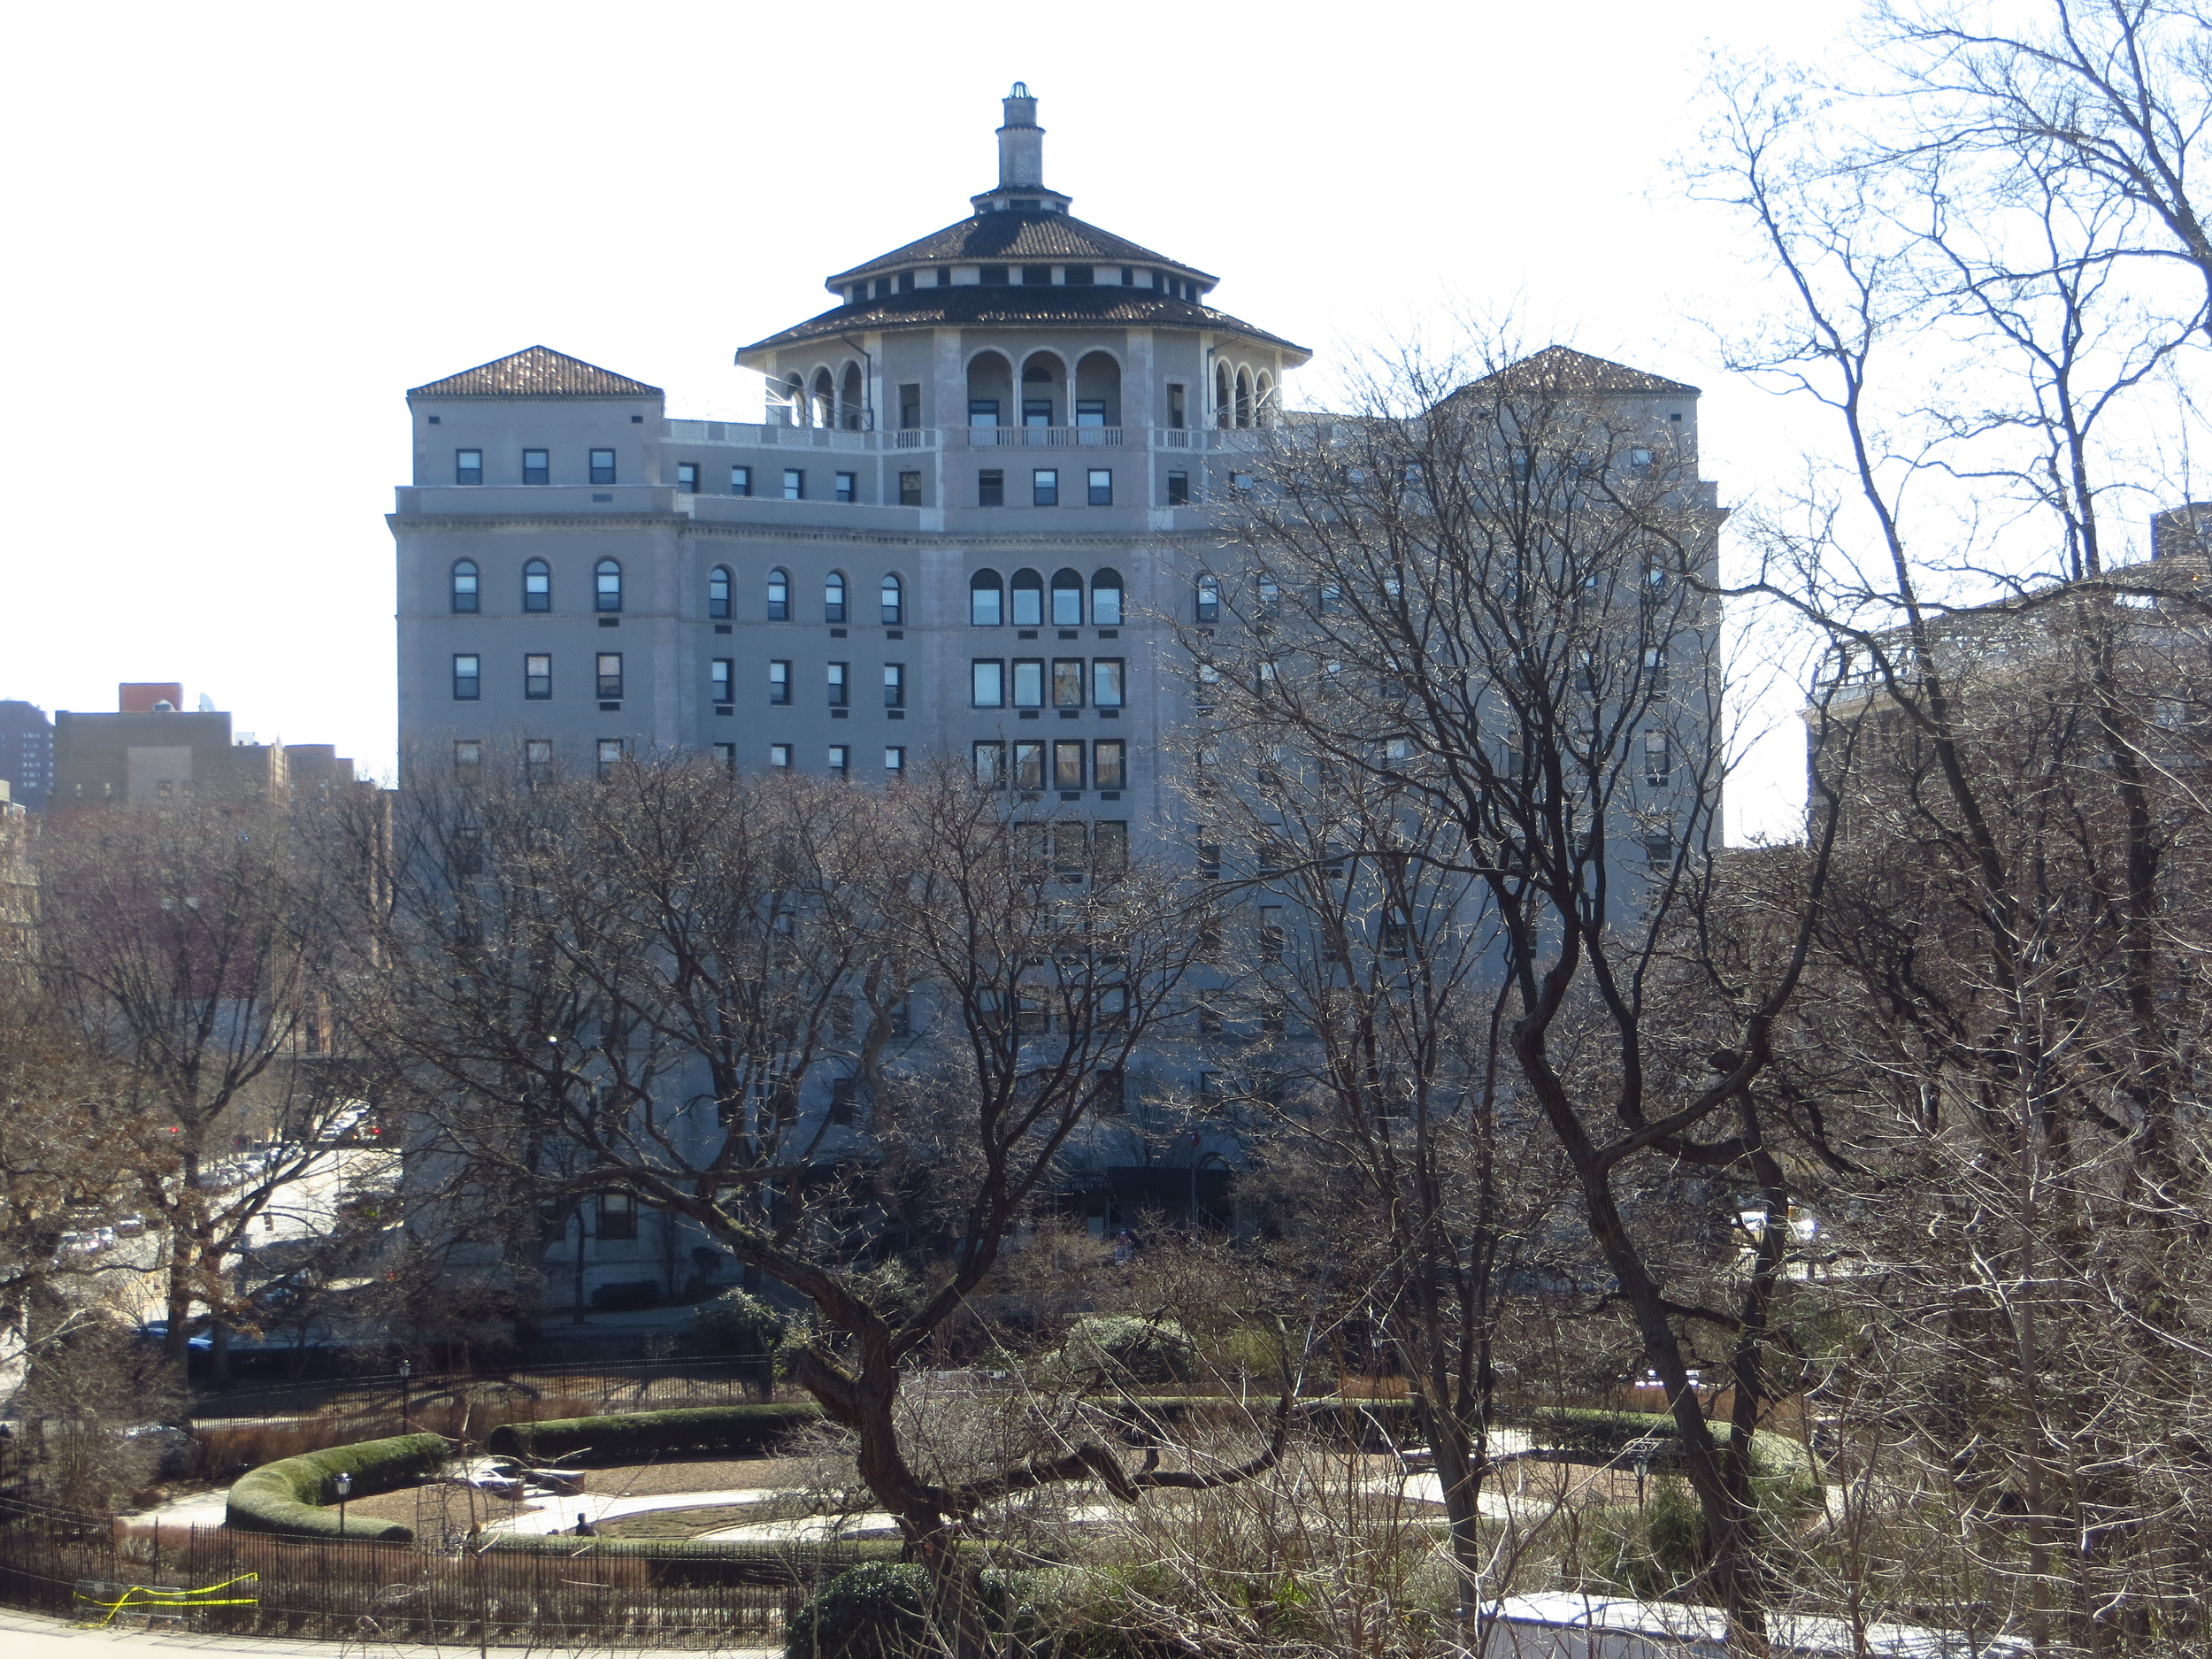 Terence Cardinal Cooke Health Care Center from Central Park